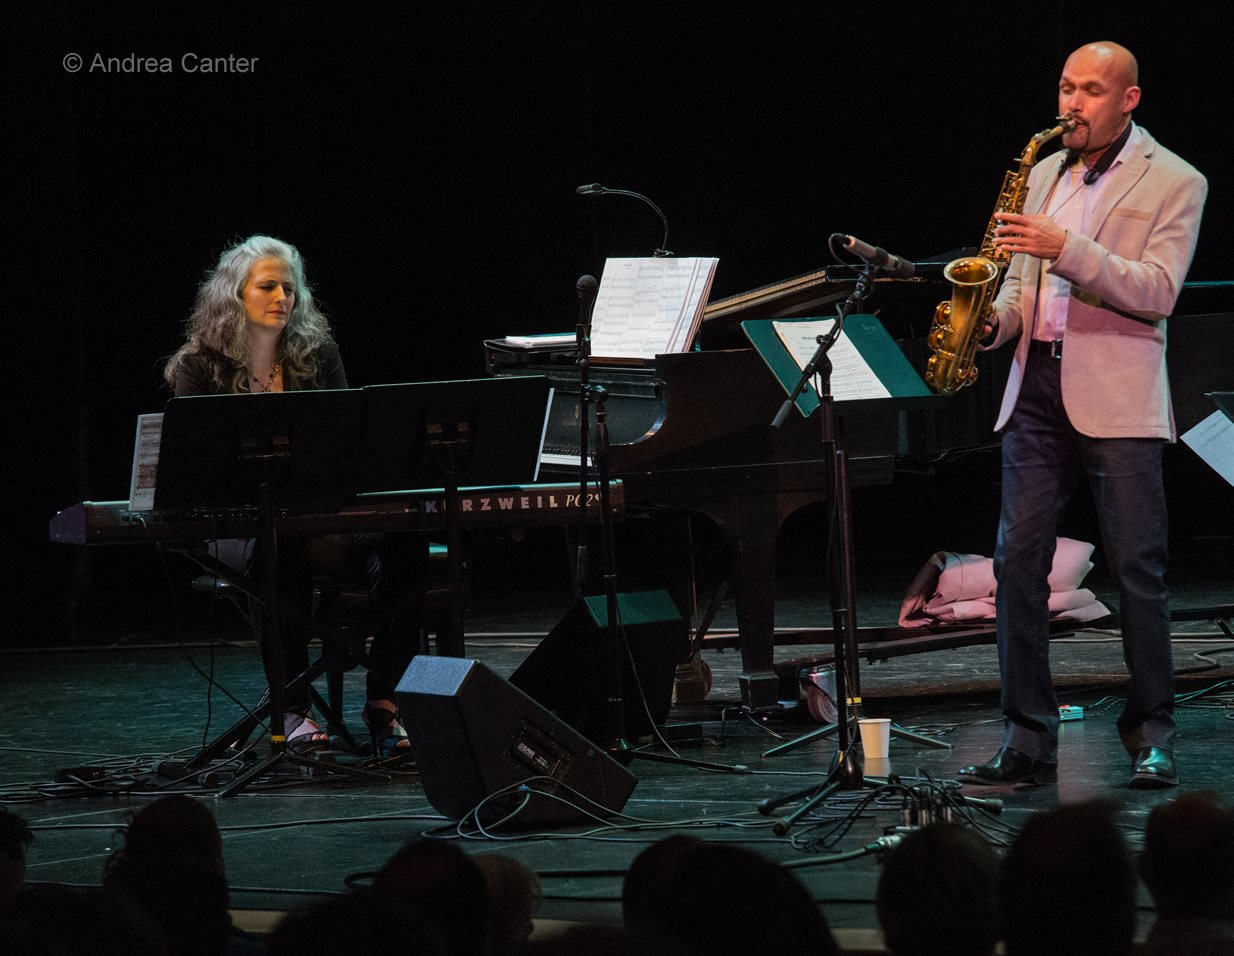 Pianist Mary Louise Knutson with saxophonist Miguel Zenon, Minneapolis, MN.